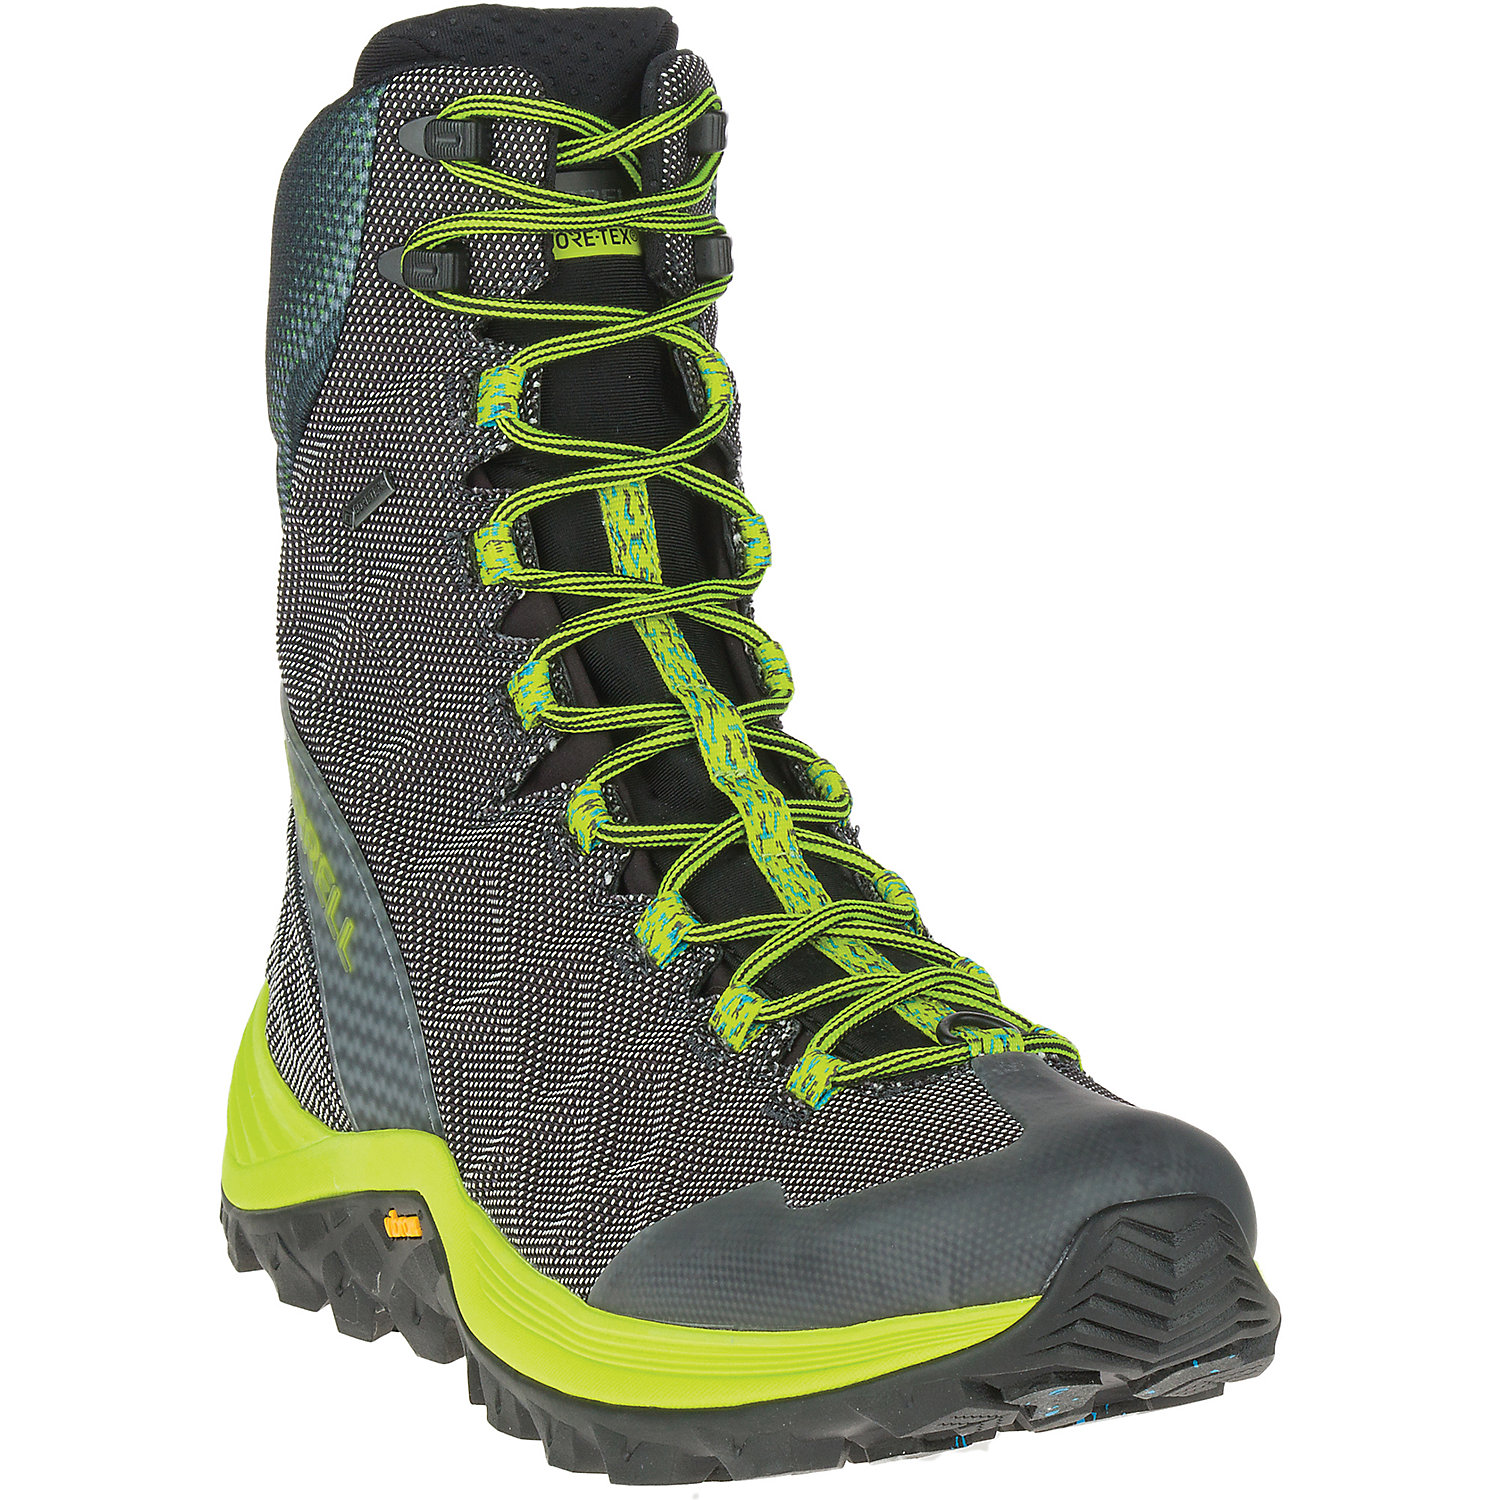 15a7786dabd Merrell Men's Thermo Rogue 8IN Gore-Tex Boot - Moosejaw